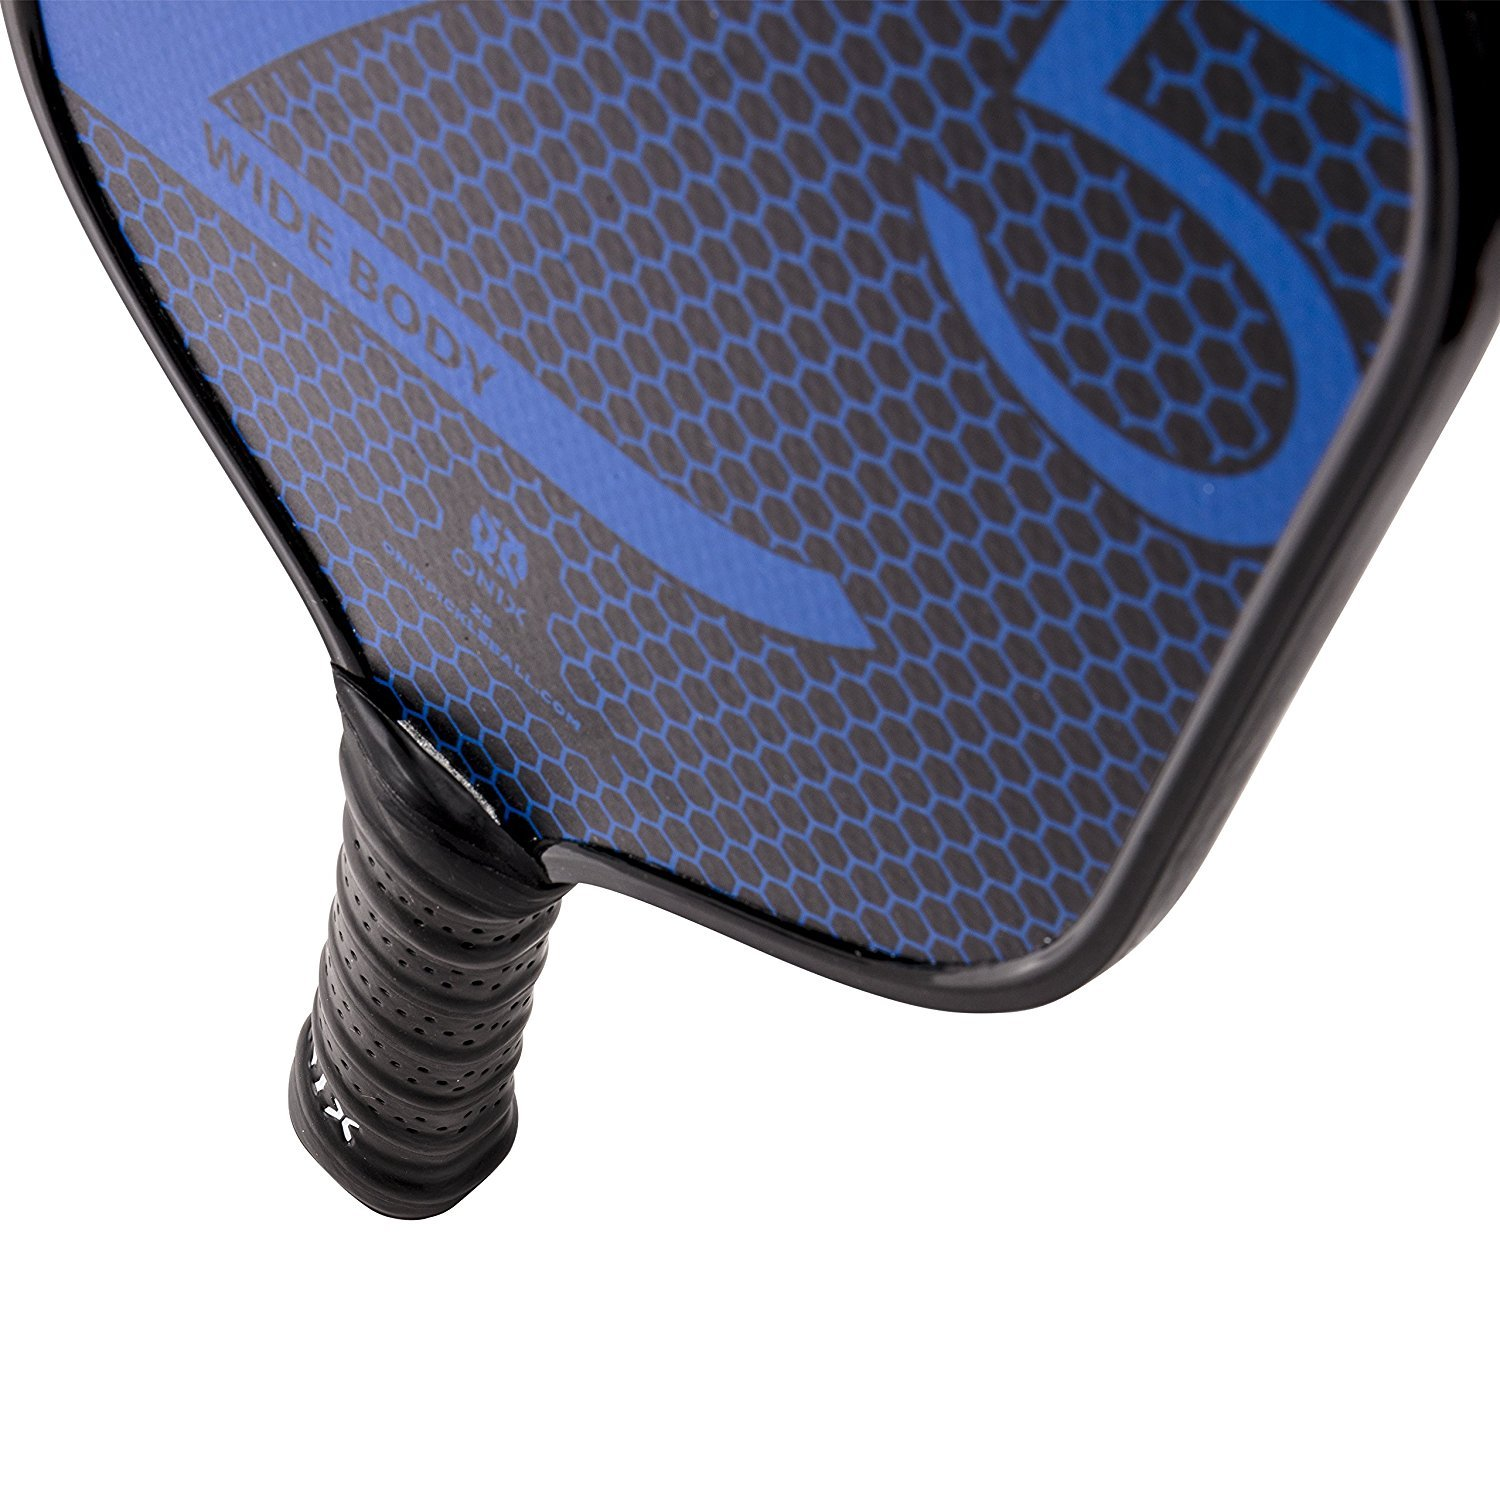 Onix Z5 Graphite Pickleball Paddle and Paddle Cover (Blue)    Gift Pack by Onix (Image #3)